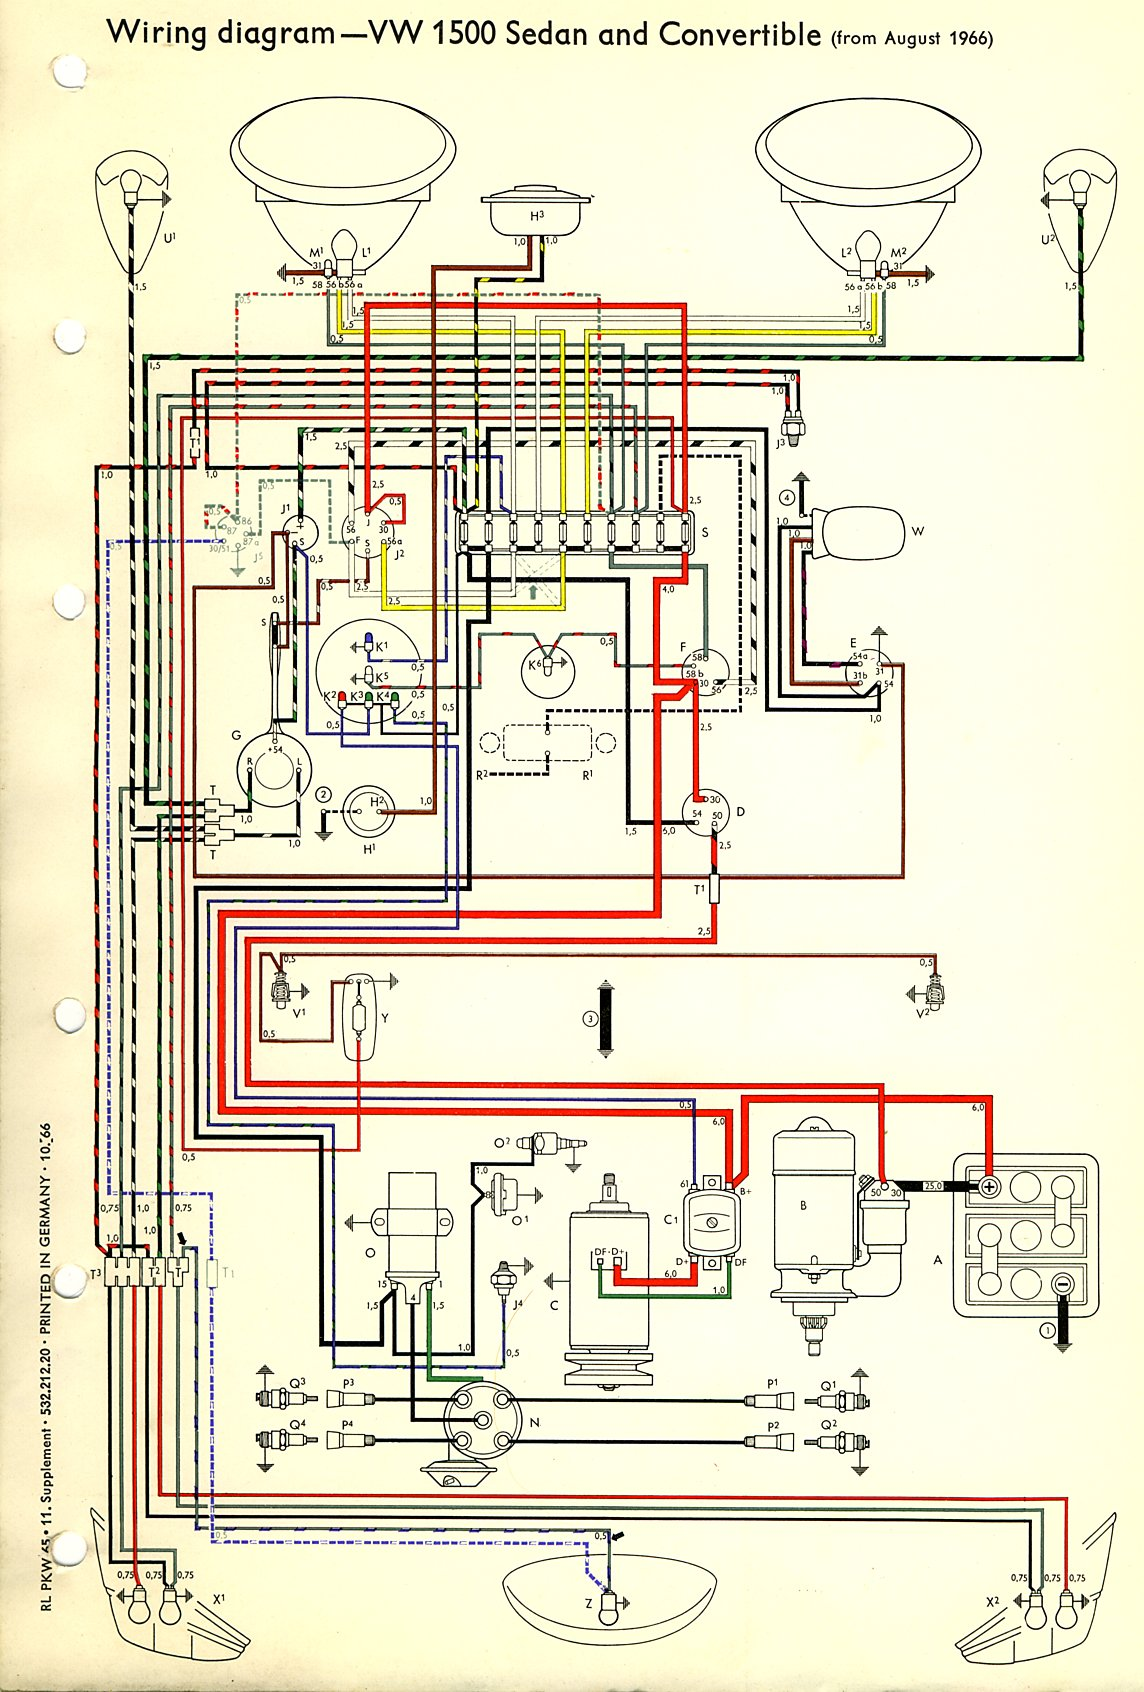 bug_67 1967 beetle wiring diagram thegoldenbug com 1957 vw beetle wiring diagram at bayanpartner.co